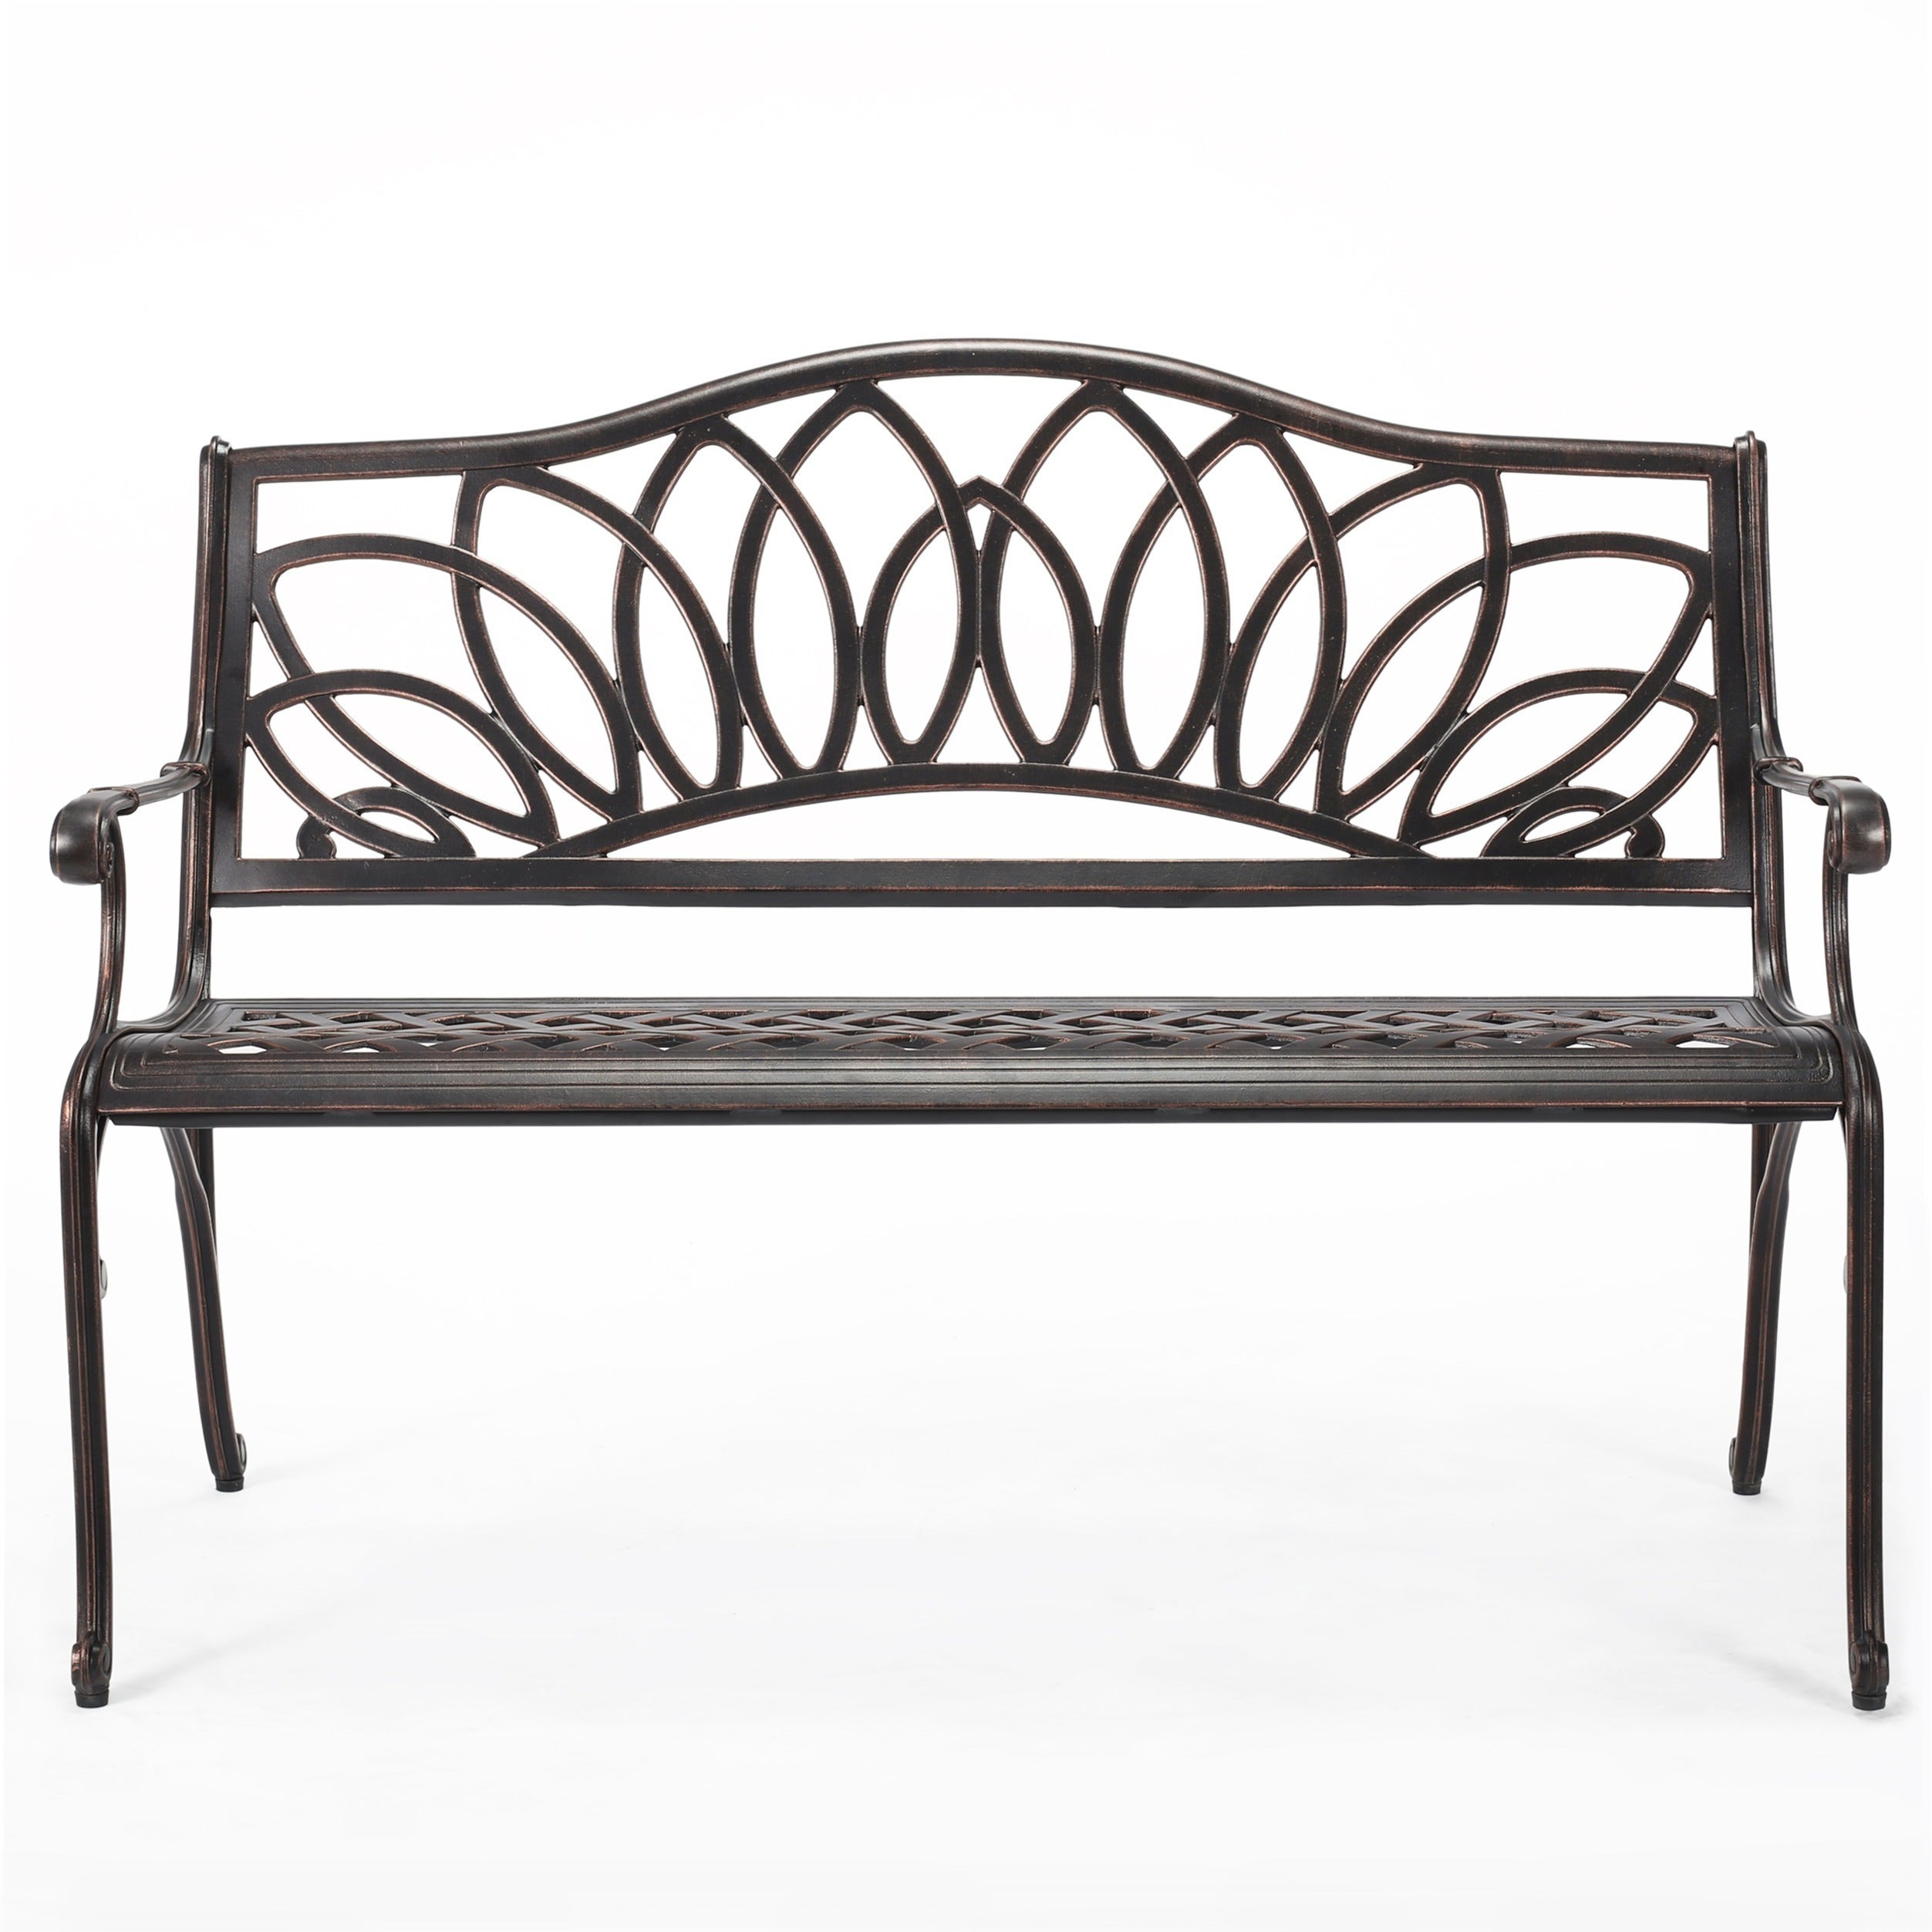 Virginia Outdoor Cast Aluminum Bench by Christopher Knight Home | eBay